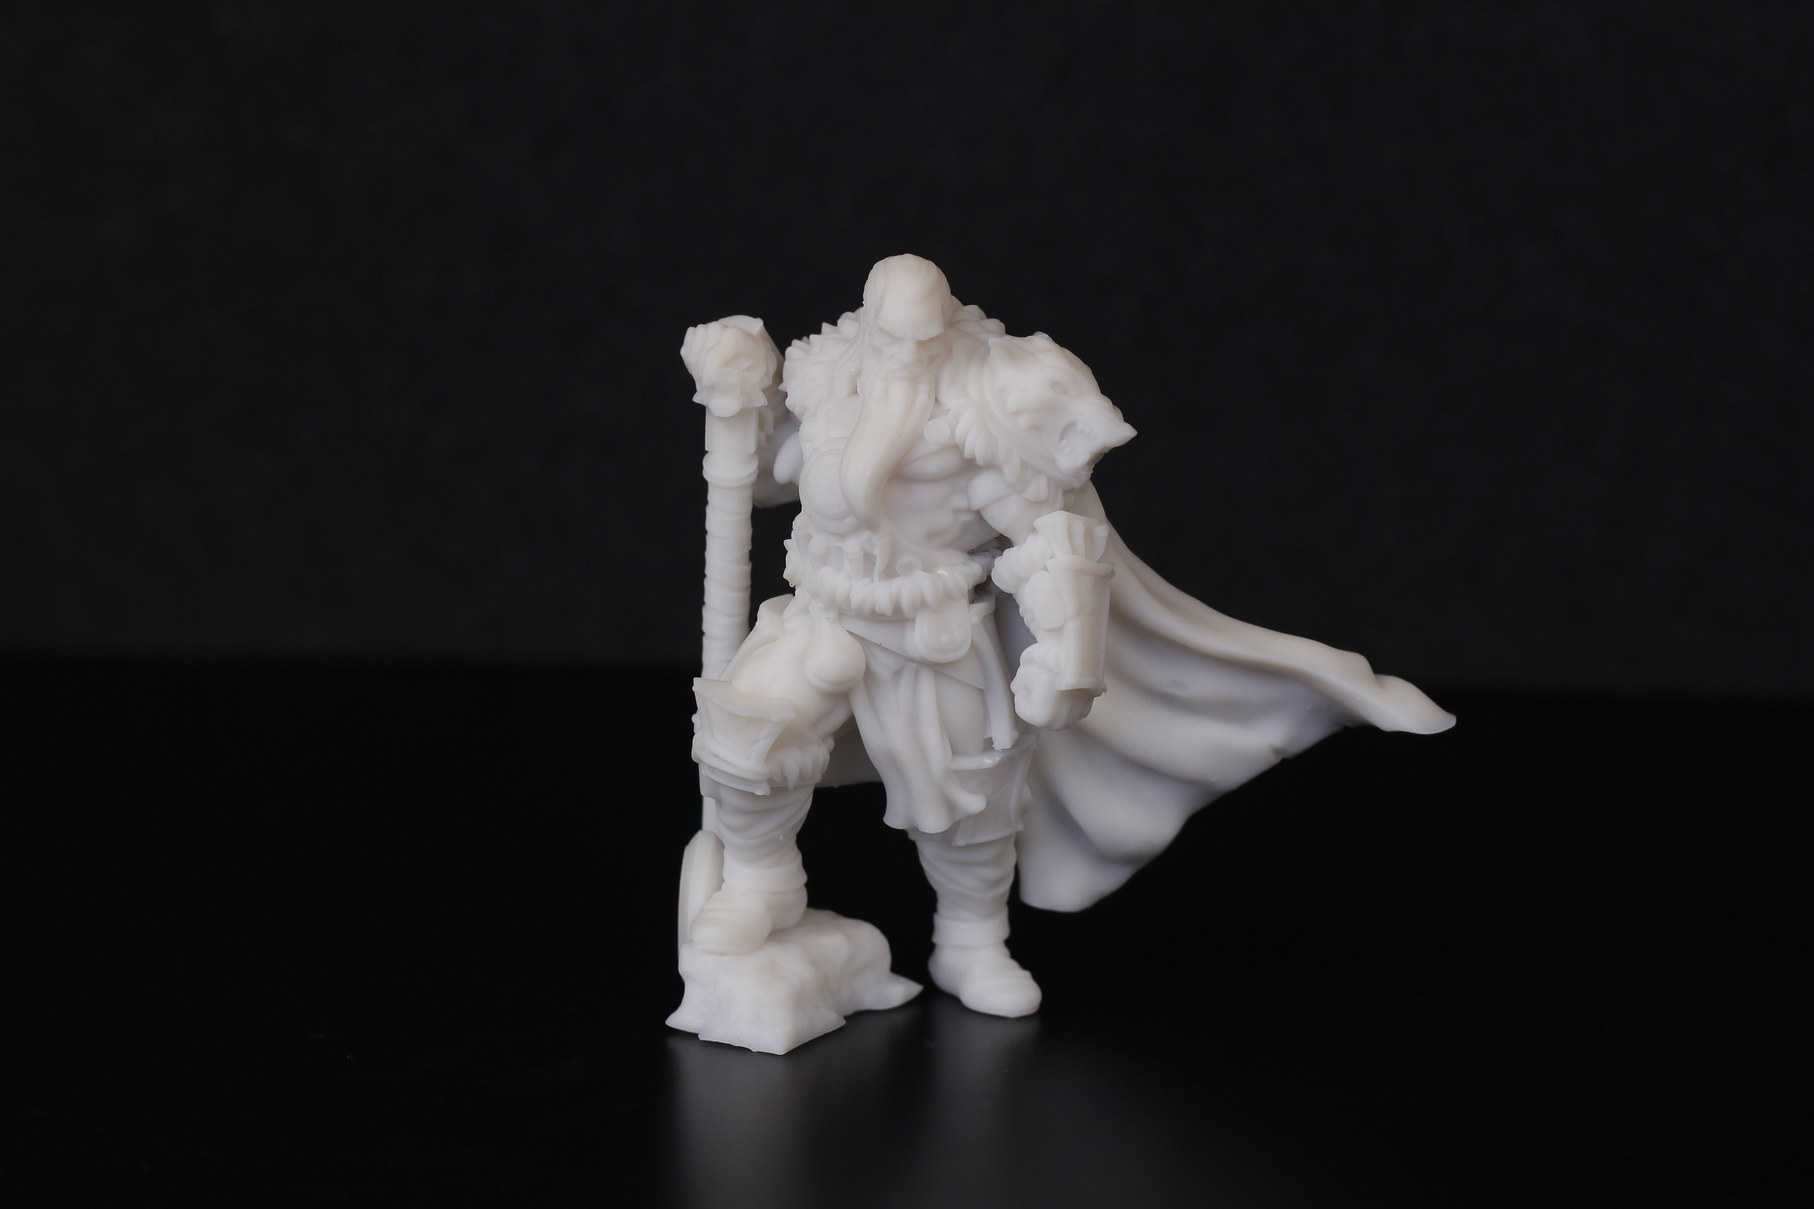 Barbarian Chieftain printed on Anycubic Photon Mono X 1 | Anycubic Photon Mono X Review - Large Format Resin 3D Printer